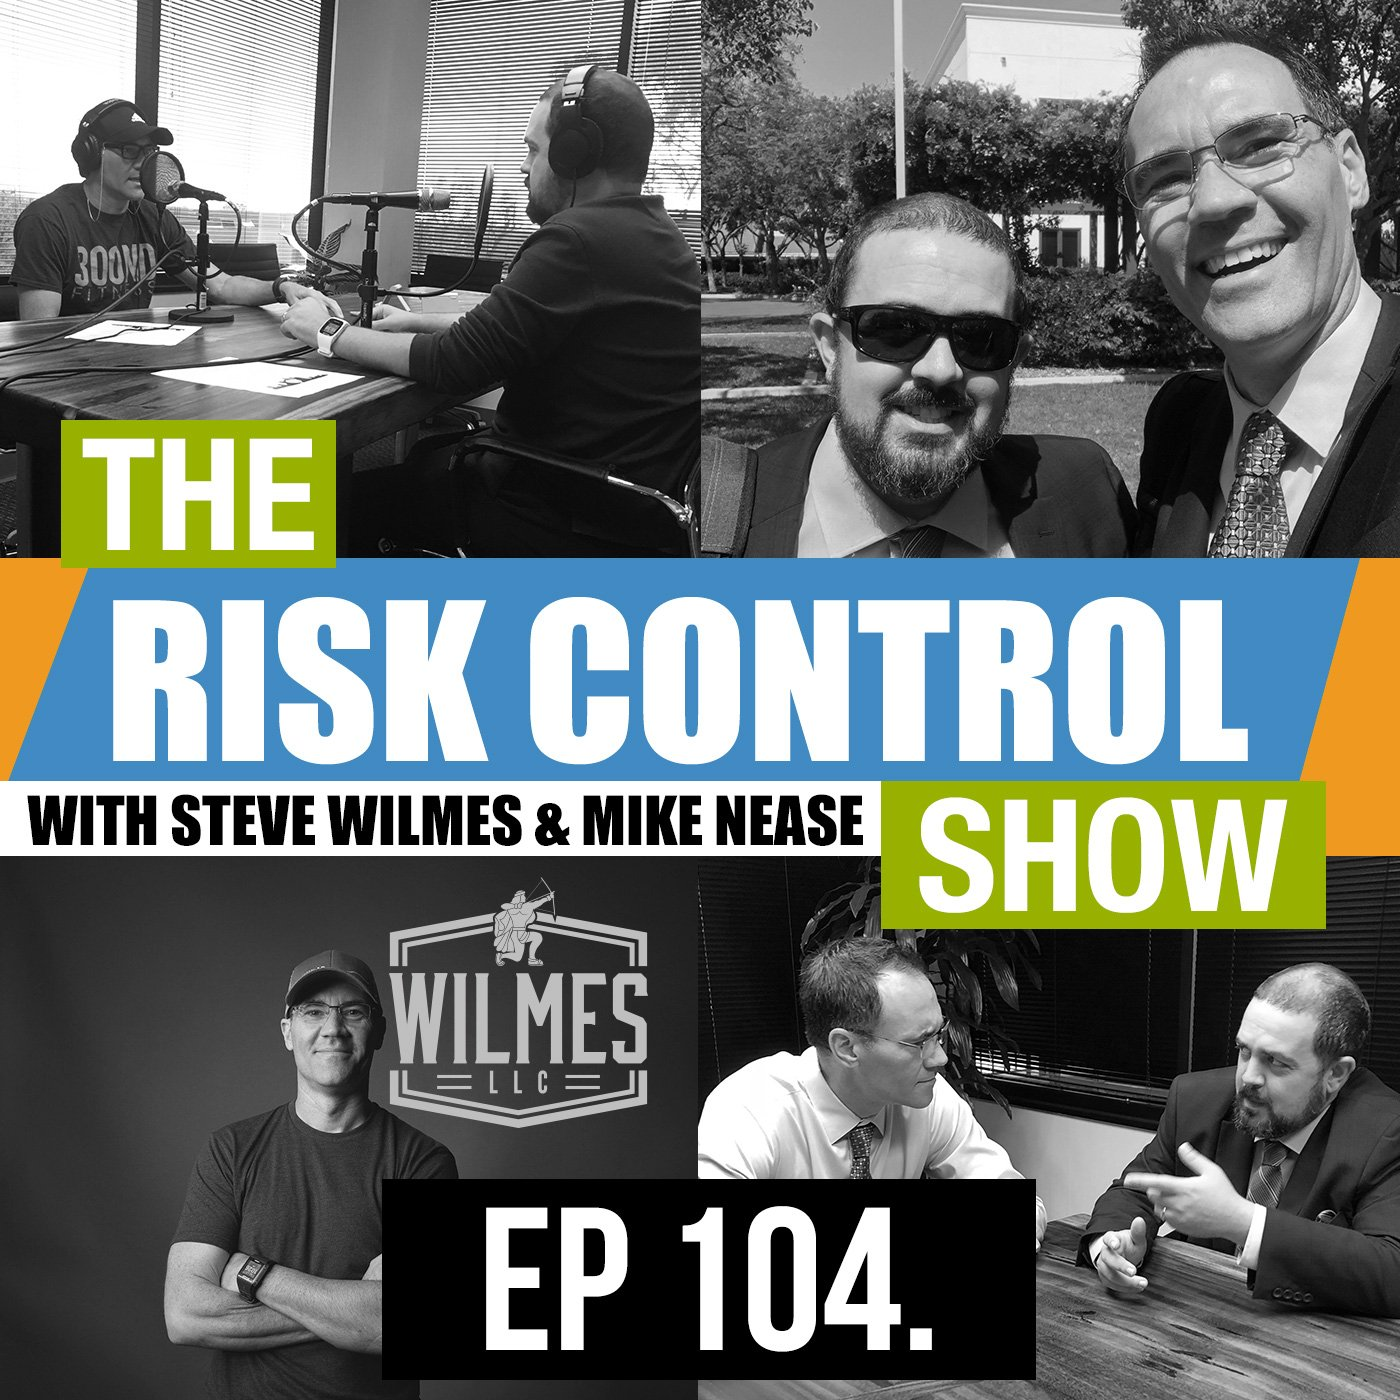 The Risk Control Show Episode 104